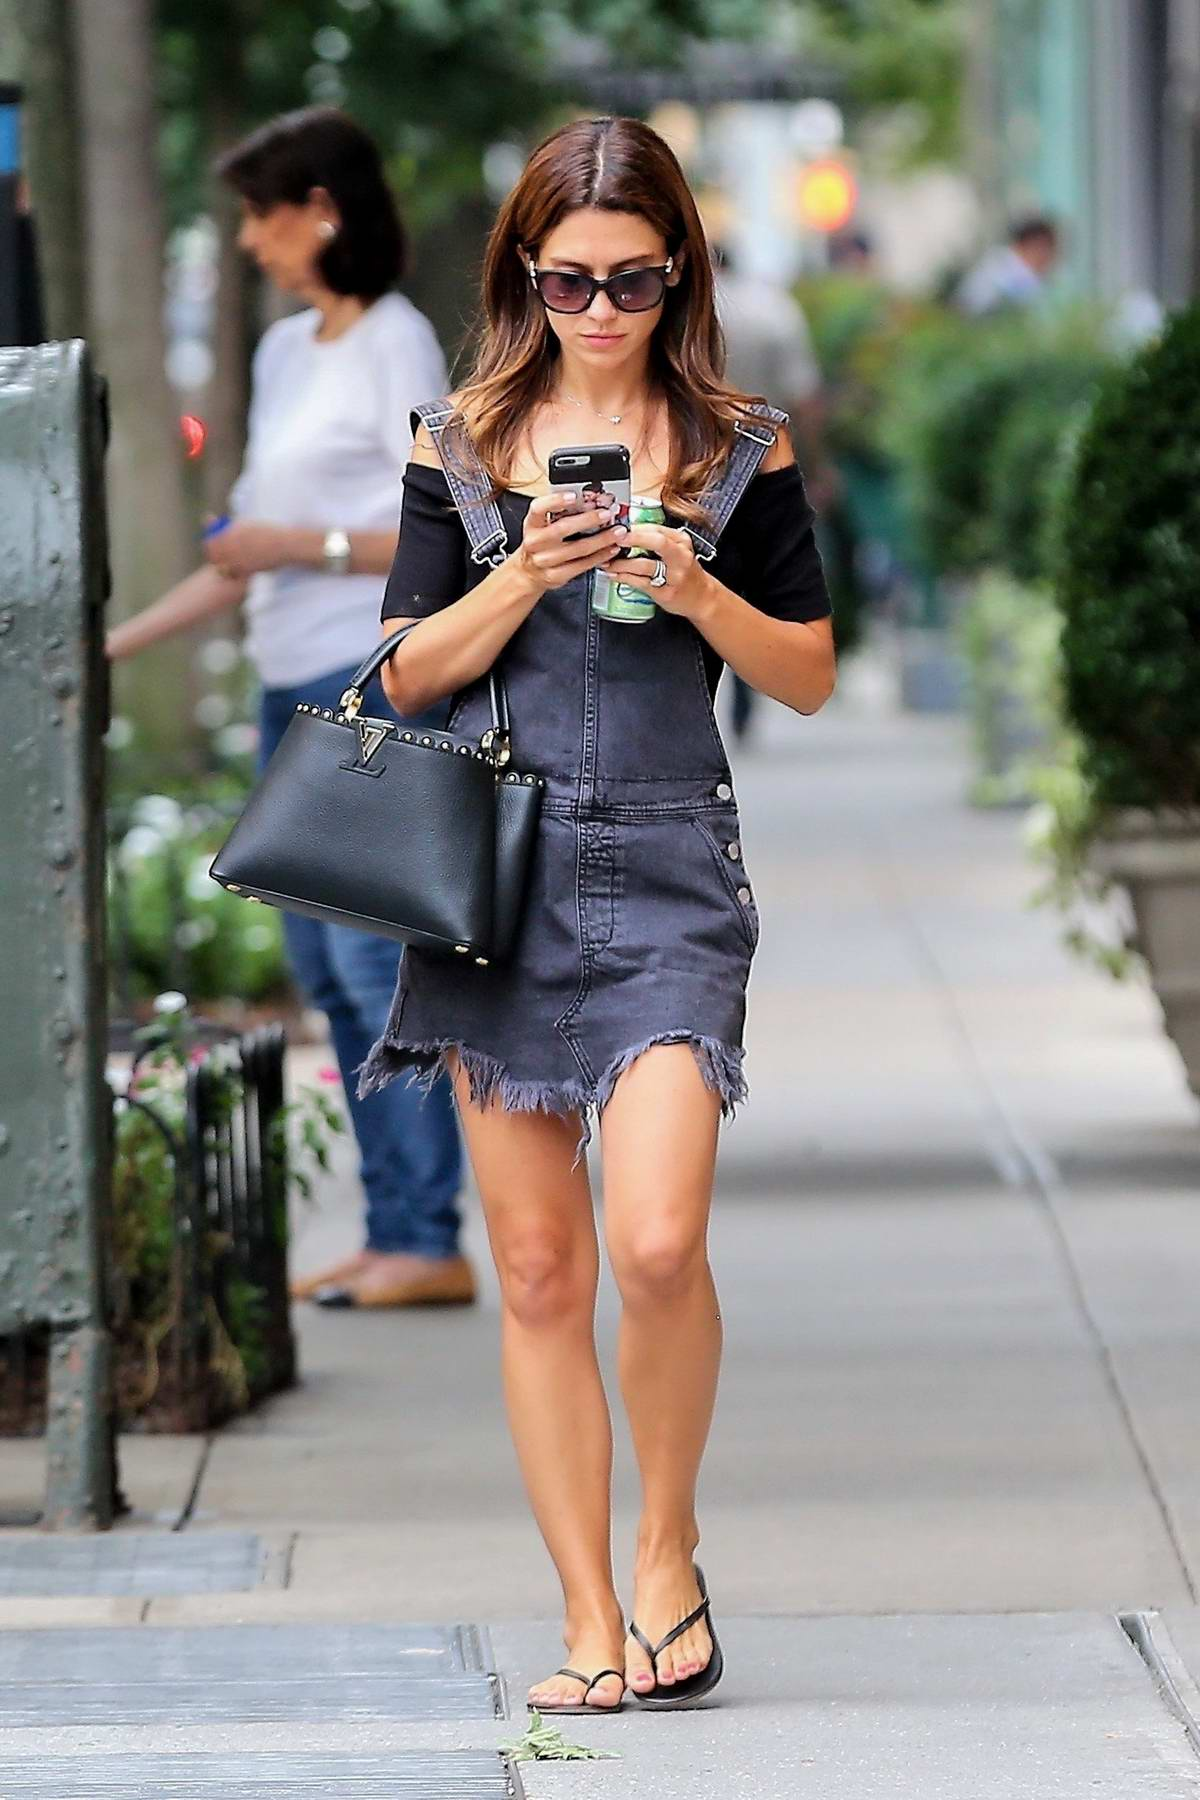 Hilaria Baldwin busy on her phone as she walks to the nearby hair salon in the West Village, New York